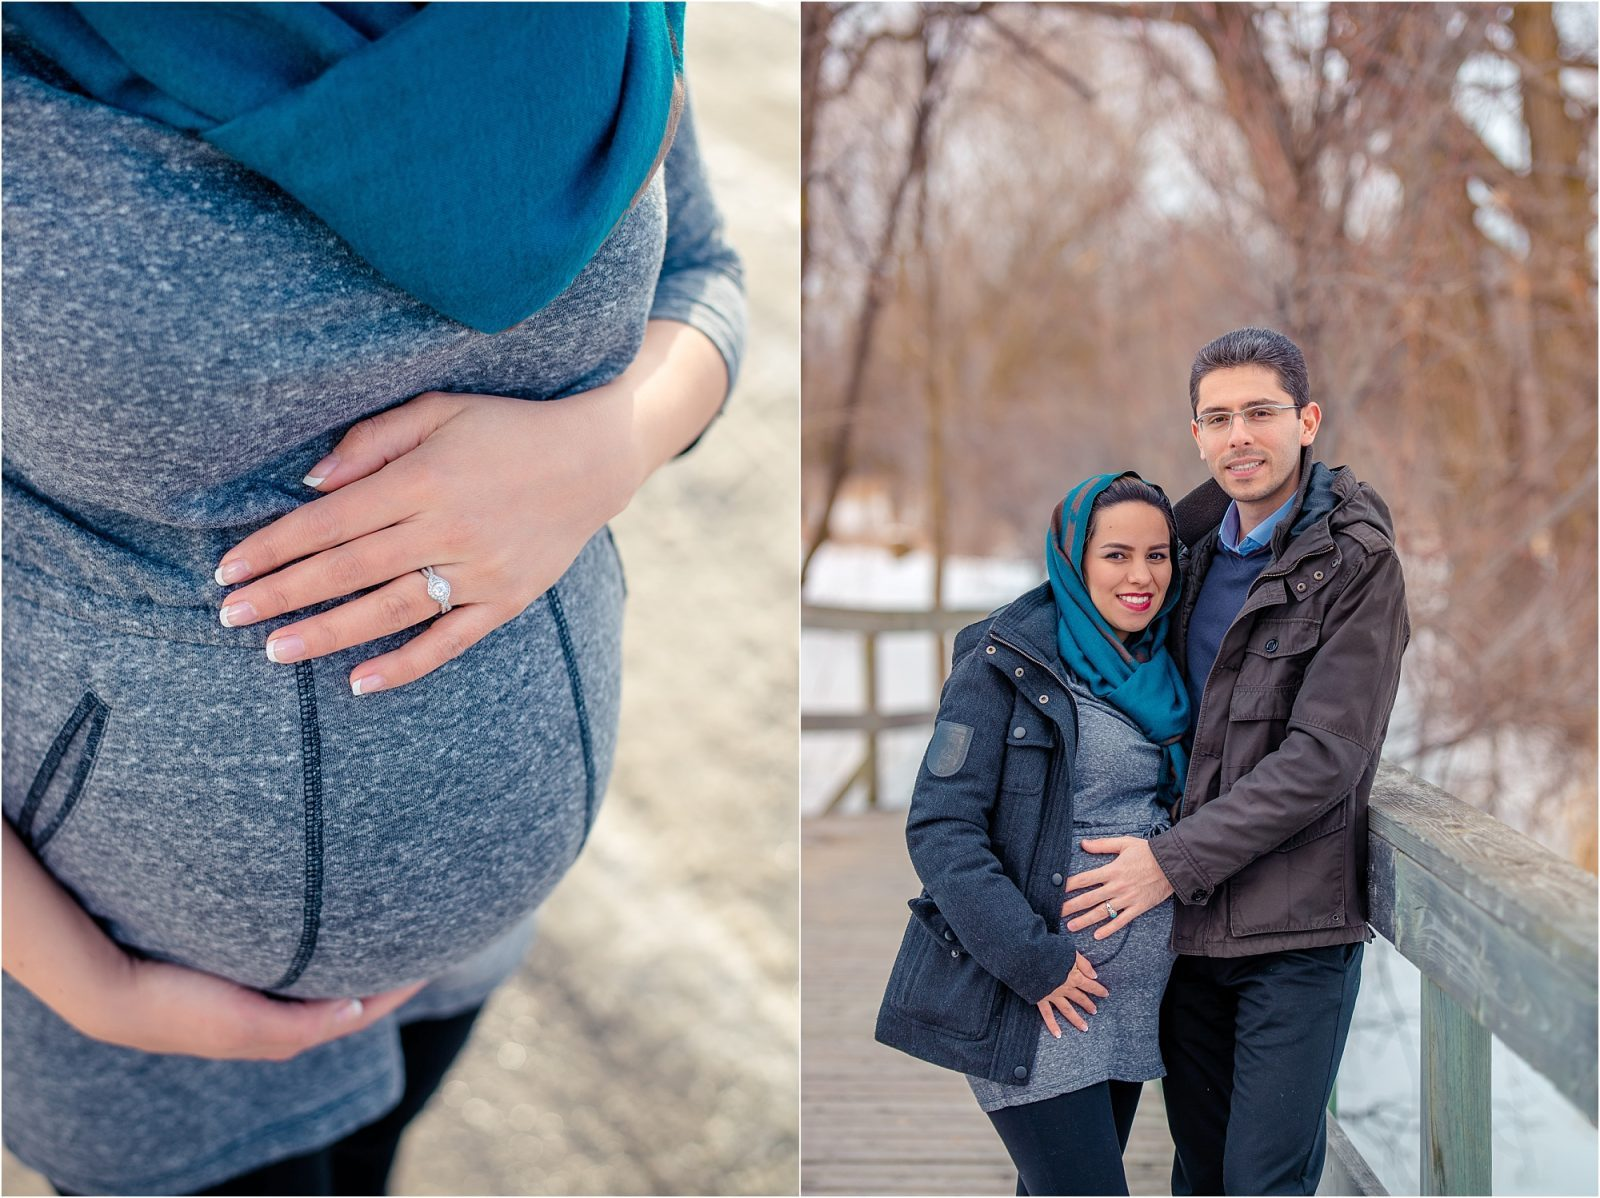 Ottawa maternity photography in winter - chapman mills conservation (1)